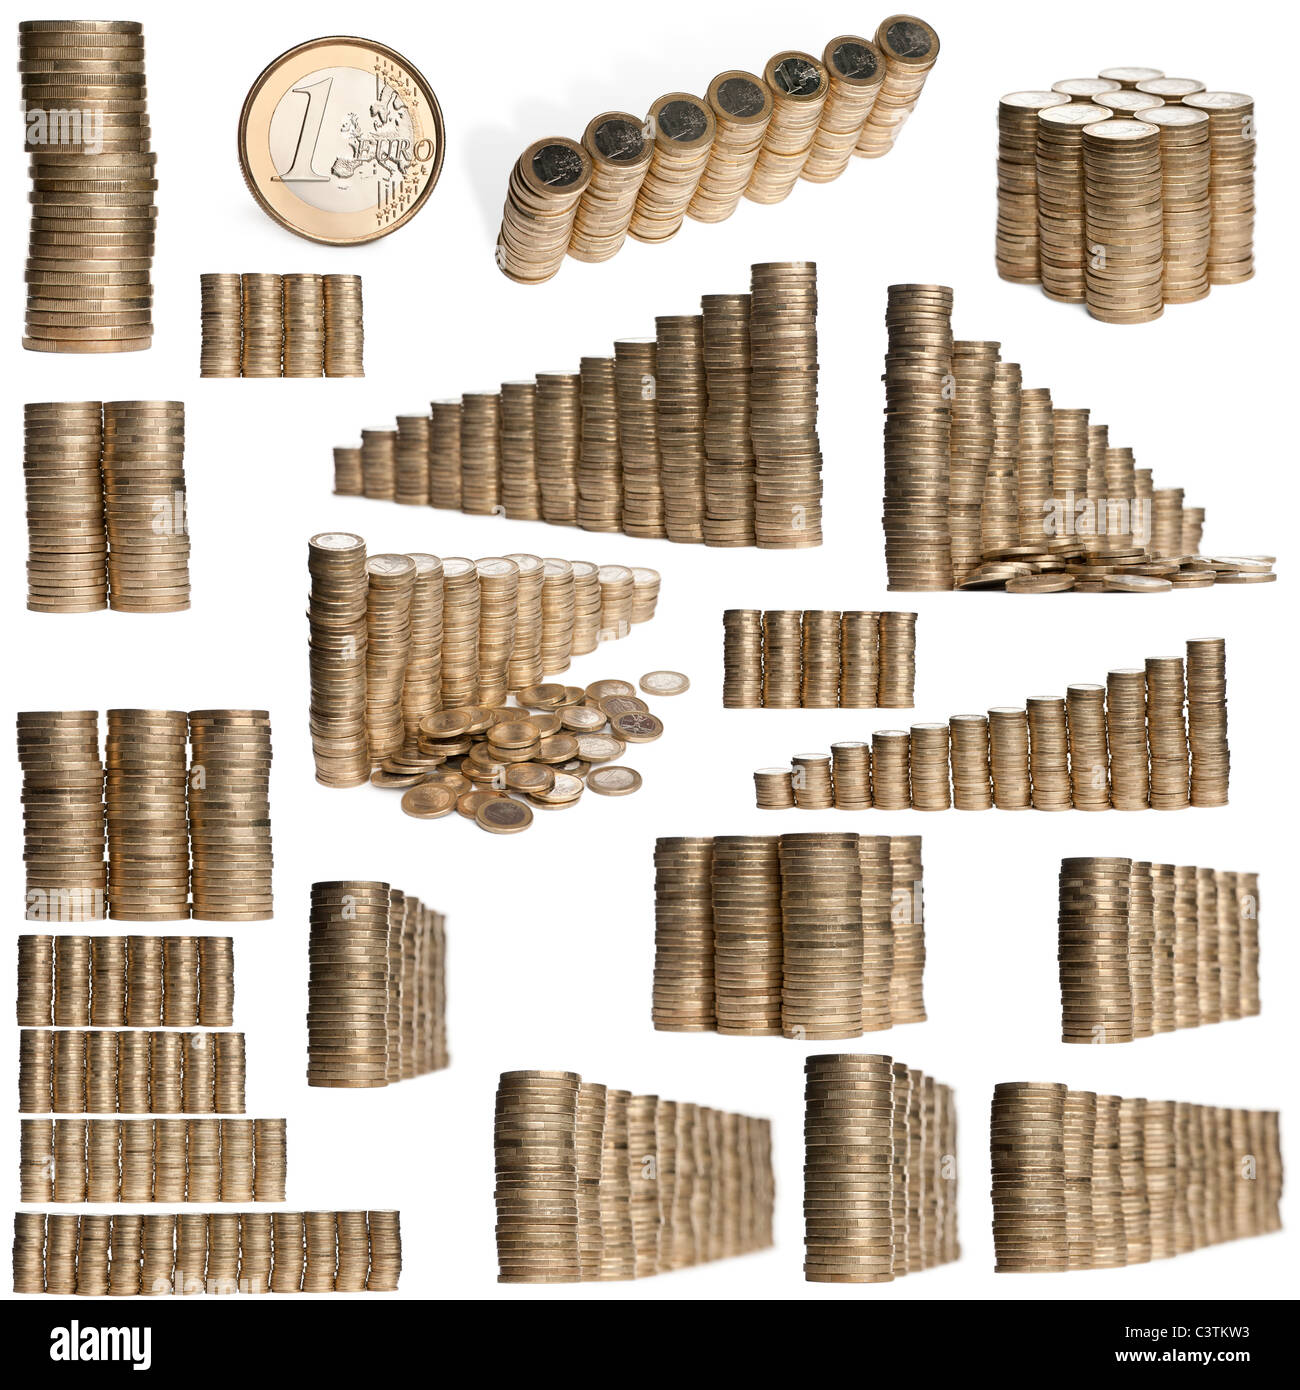 Stacks of 2 Euros in front of white background - Stock Image